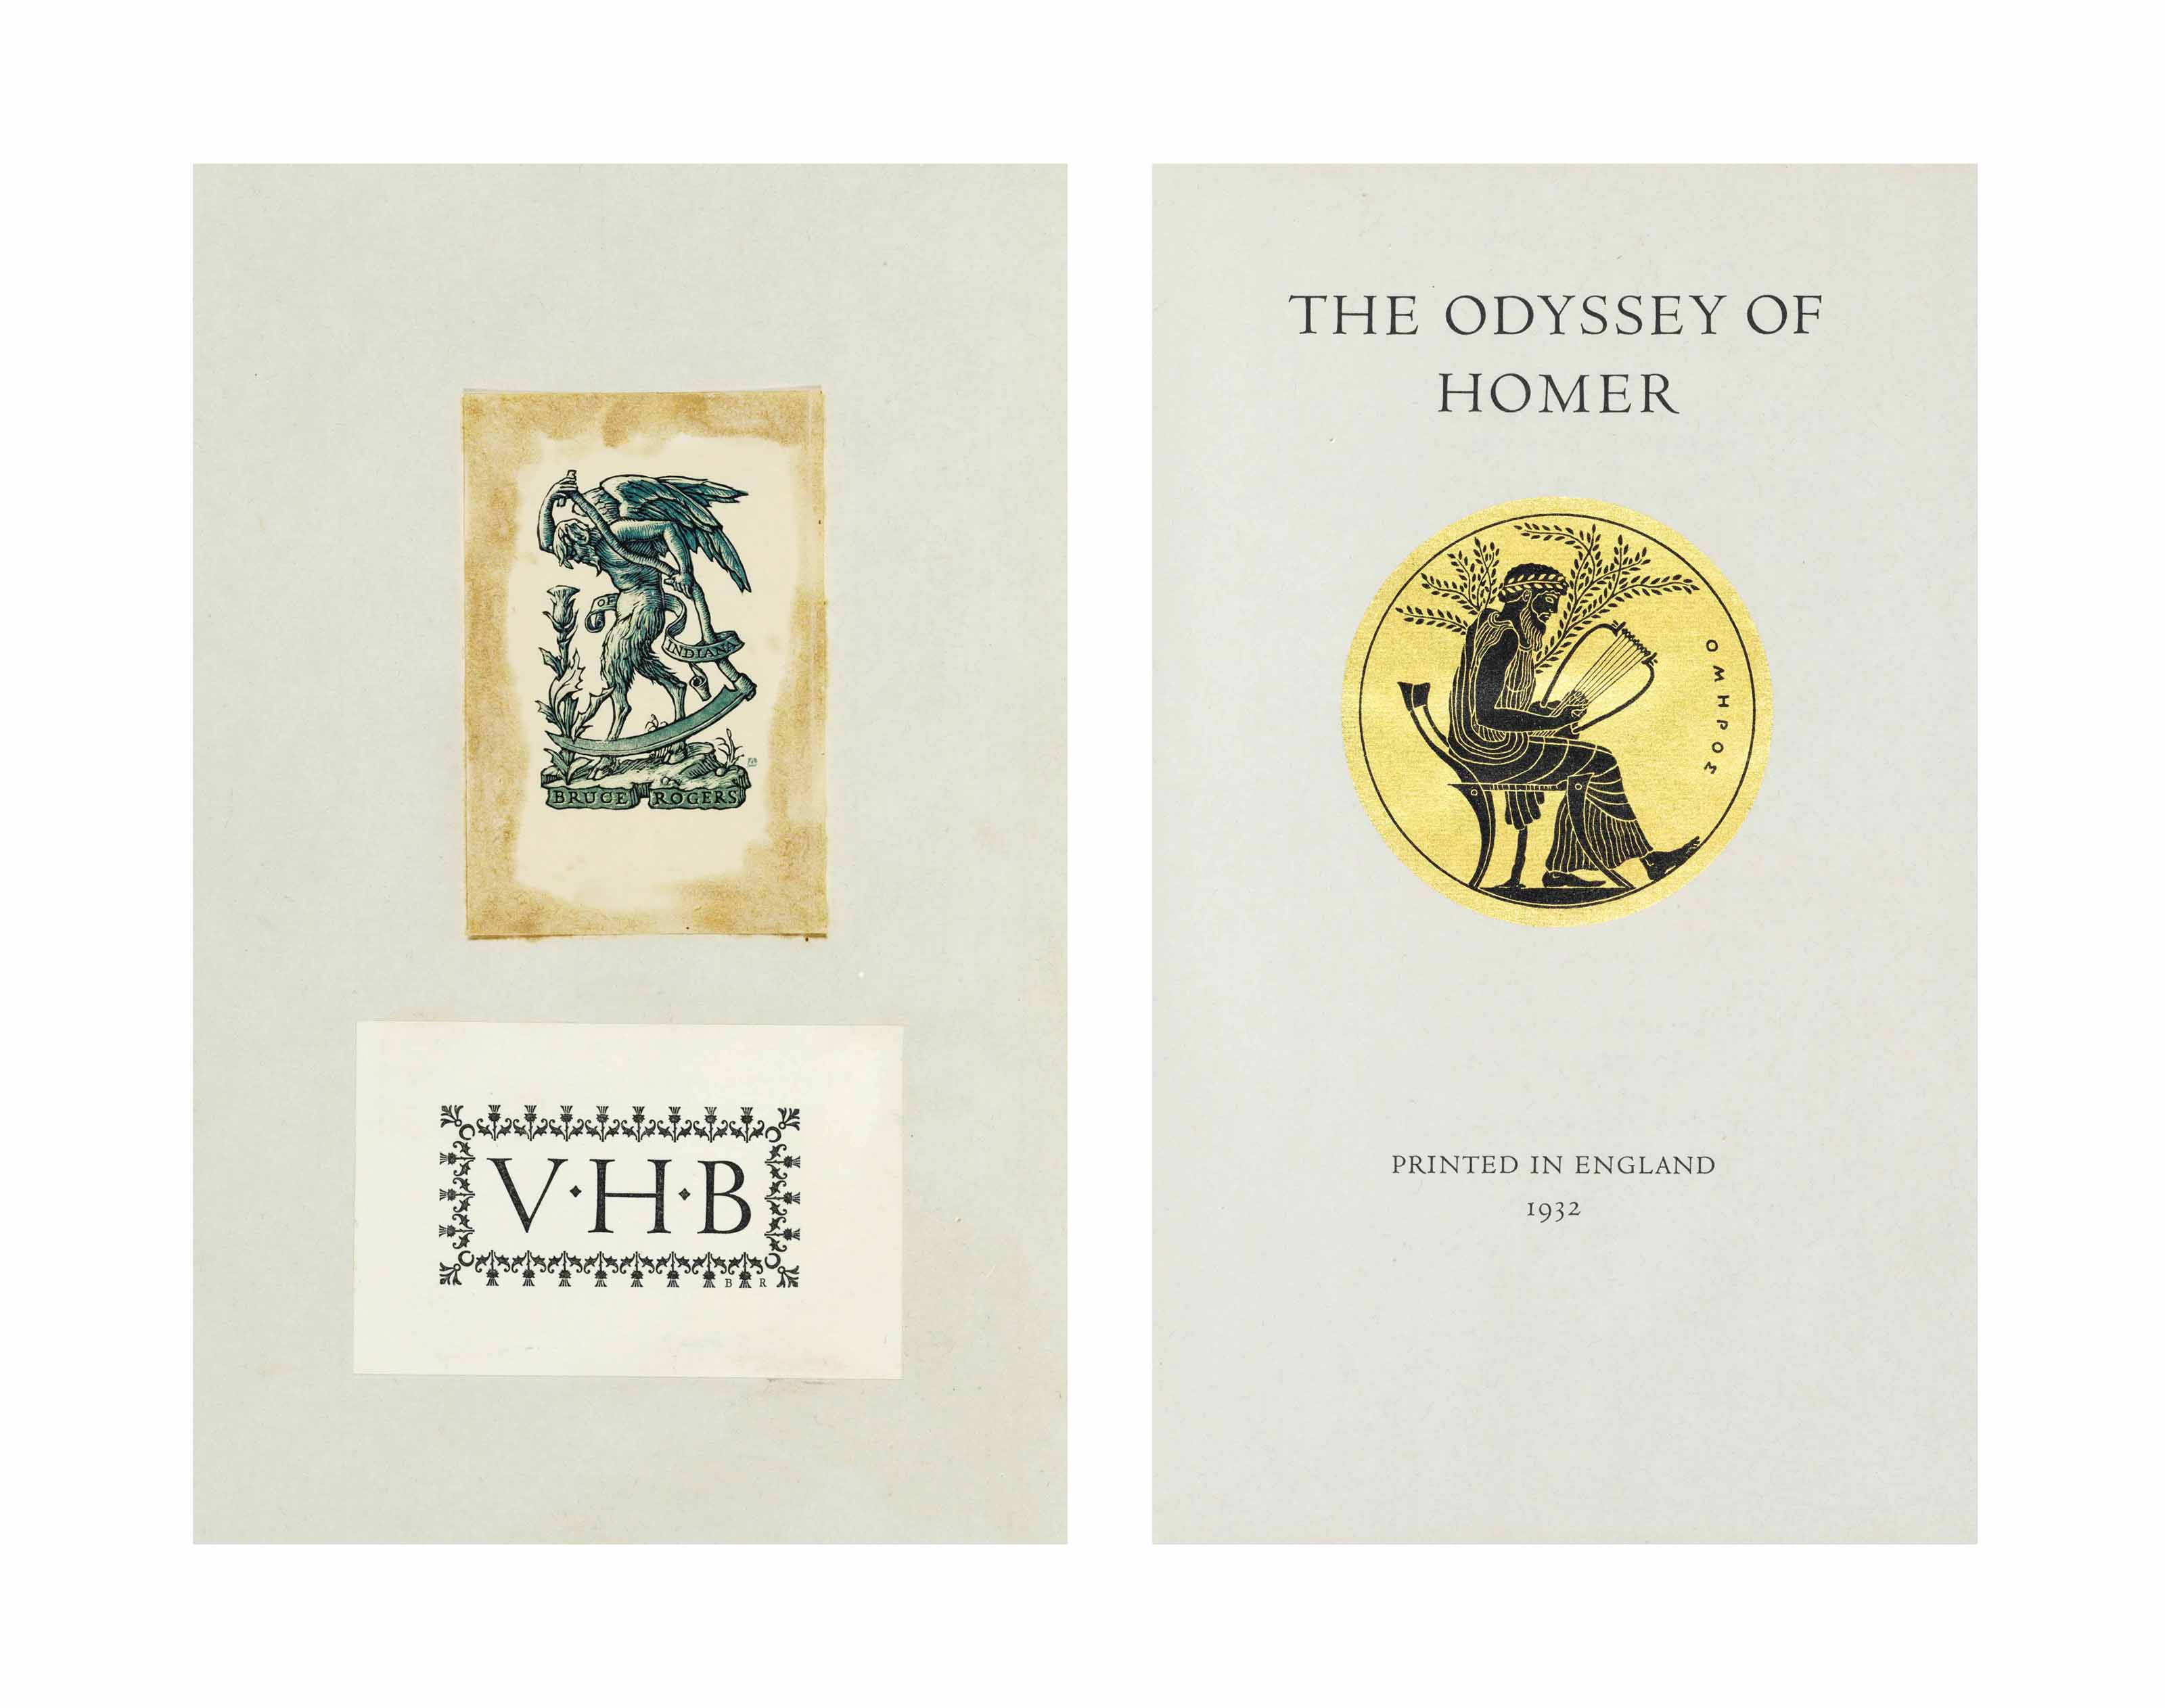 LAWRENCE, T. E., translator. – HOMER. The Odyssey of Homer. London: Sir Emery Walker, Wilfred Merton and Bruce Rogers, 1932.